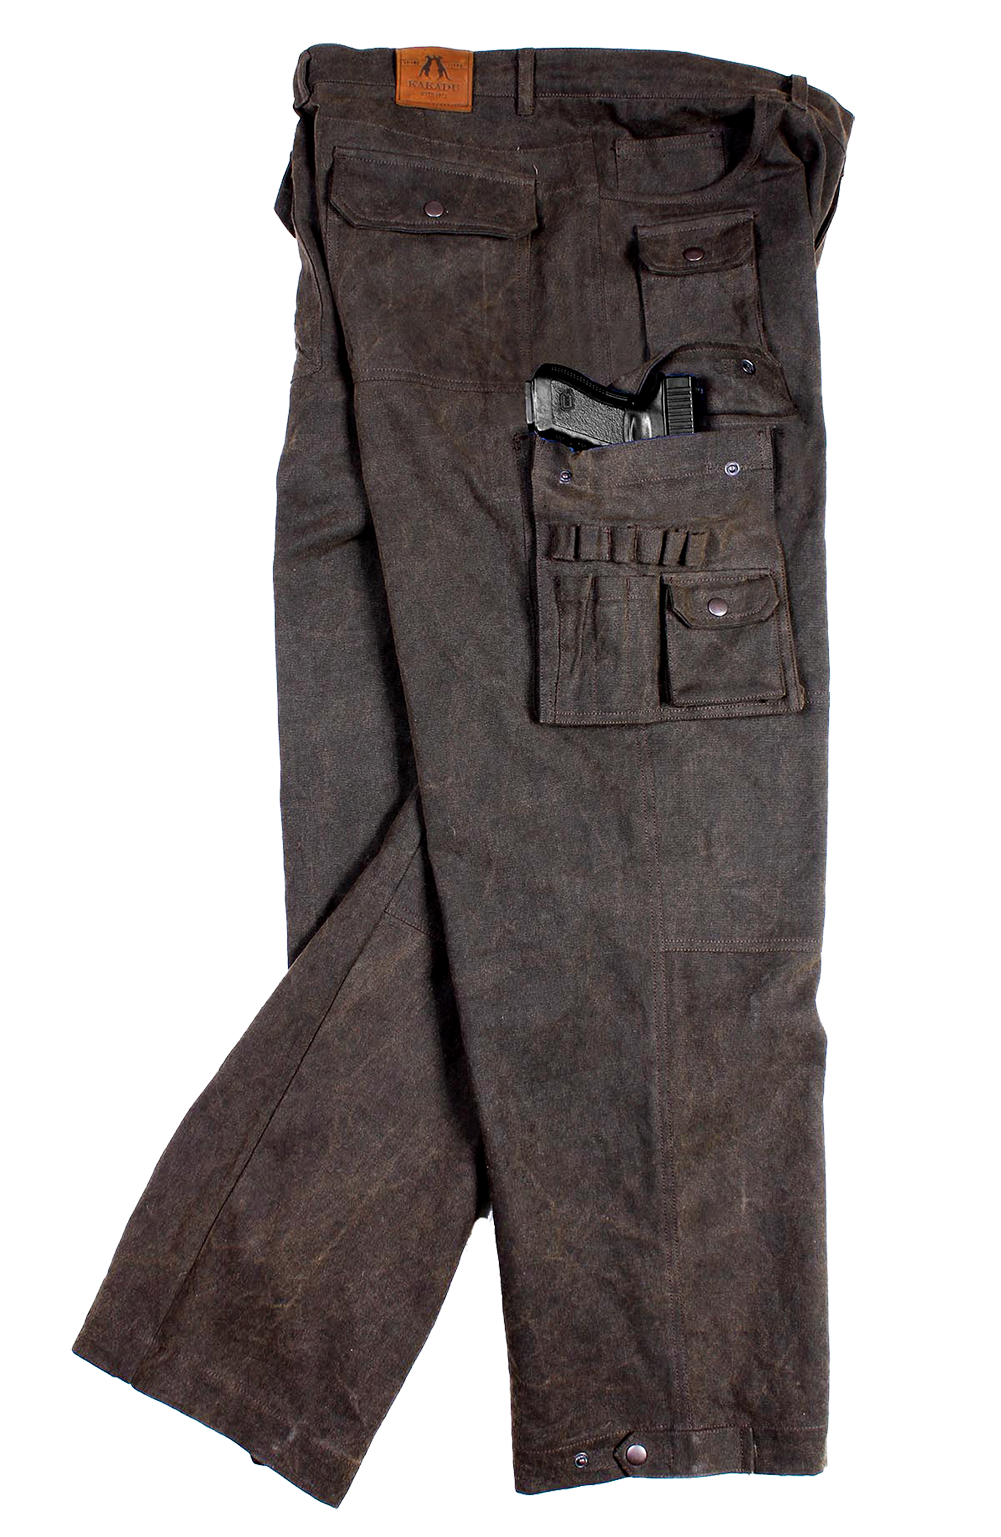 87c38f1316cc Our HOLSTER CARGO PANTS will carry your 45 or similar smaller weapon ...